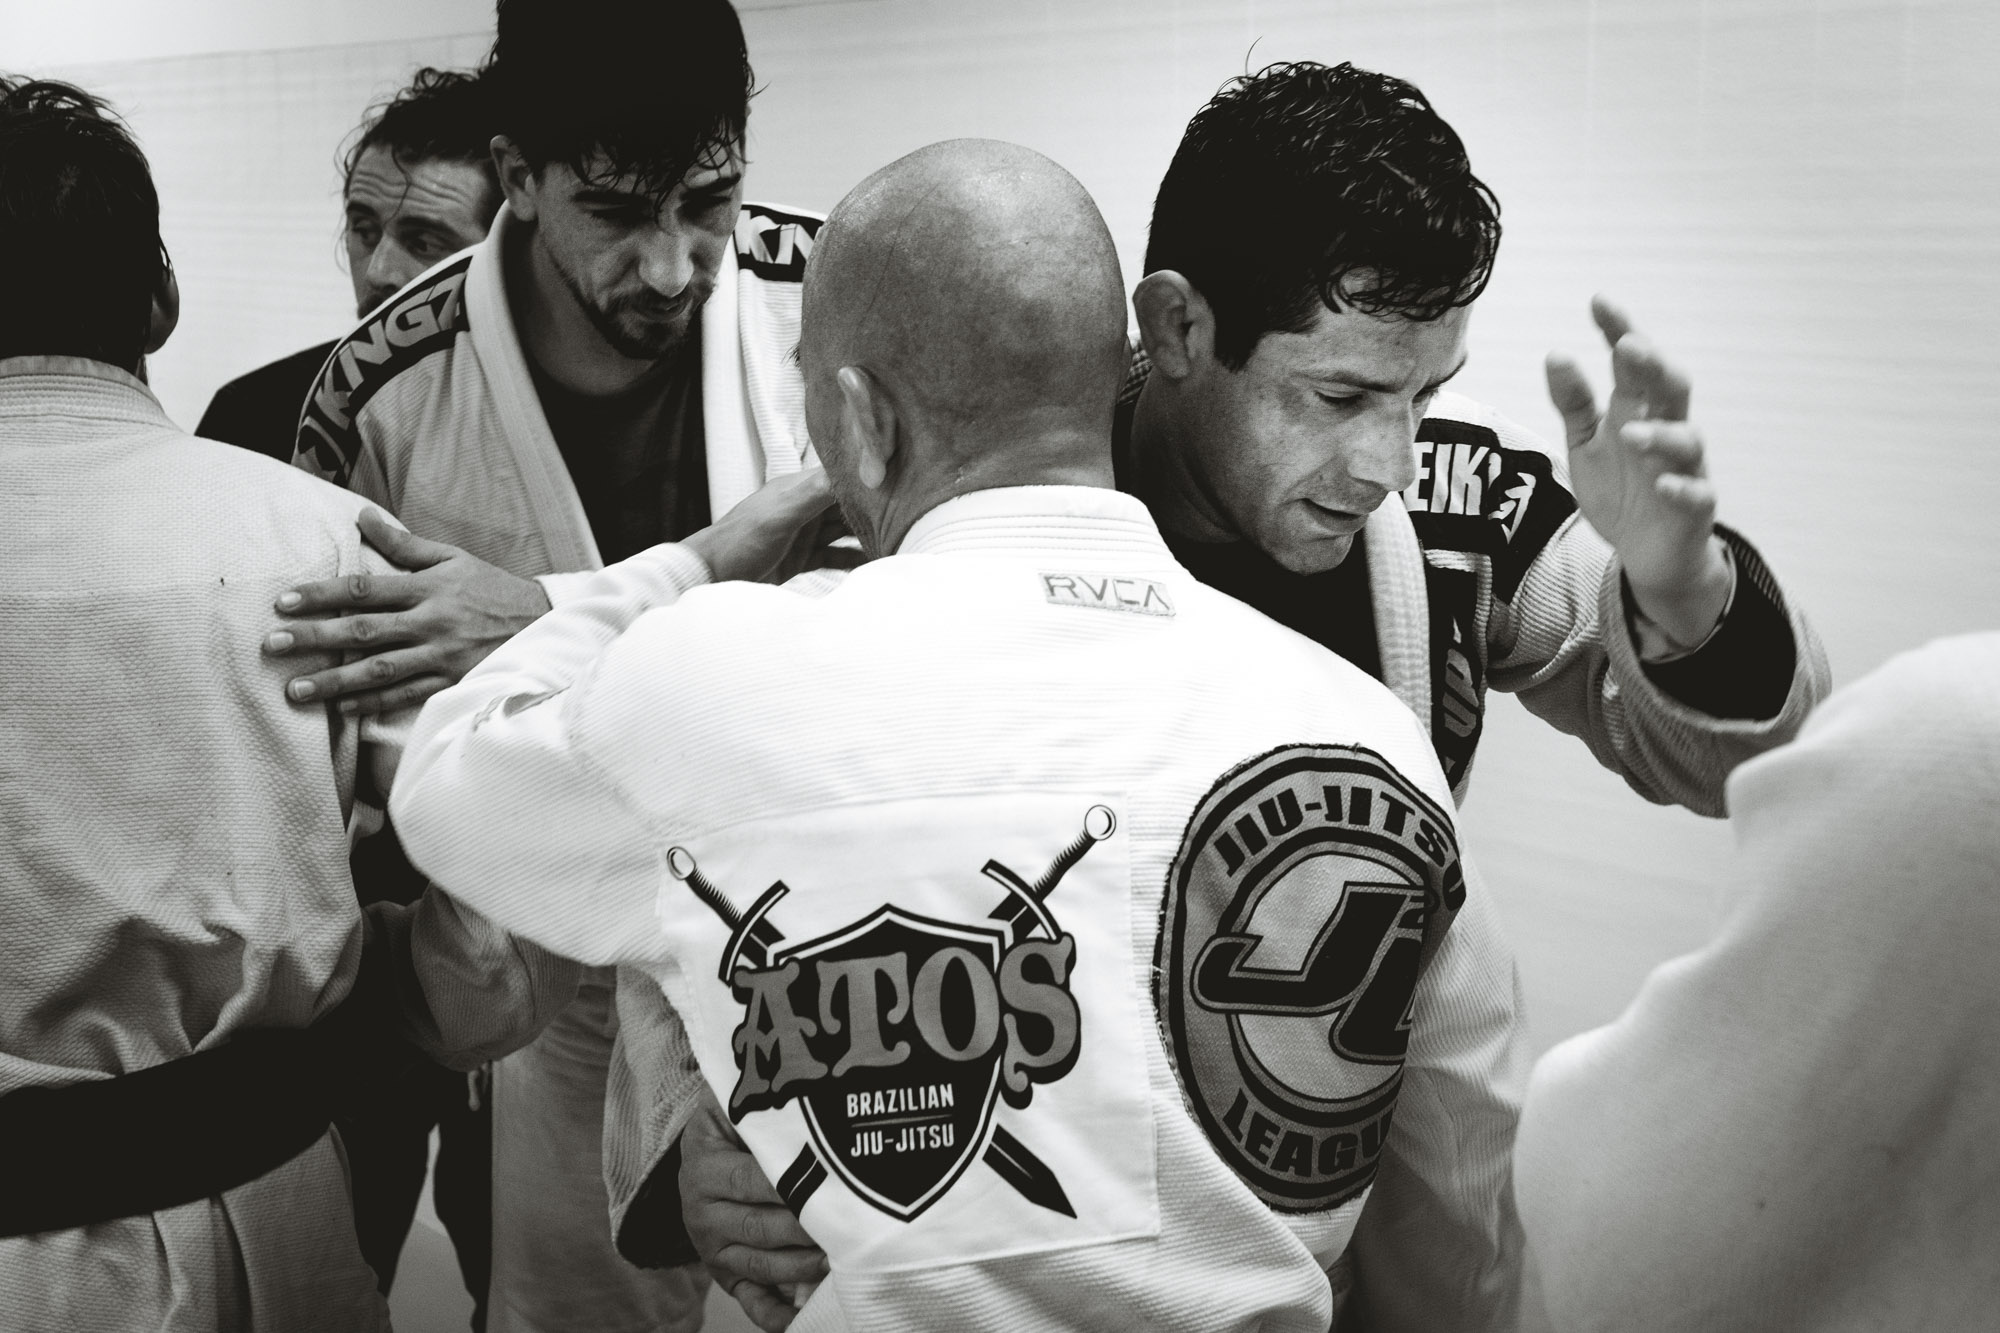 Jiu Jitsu practicioners shaking hands at the end of class